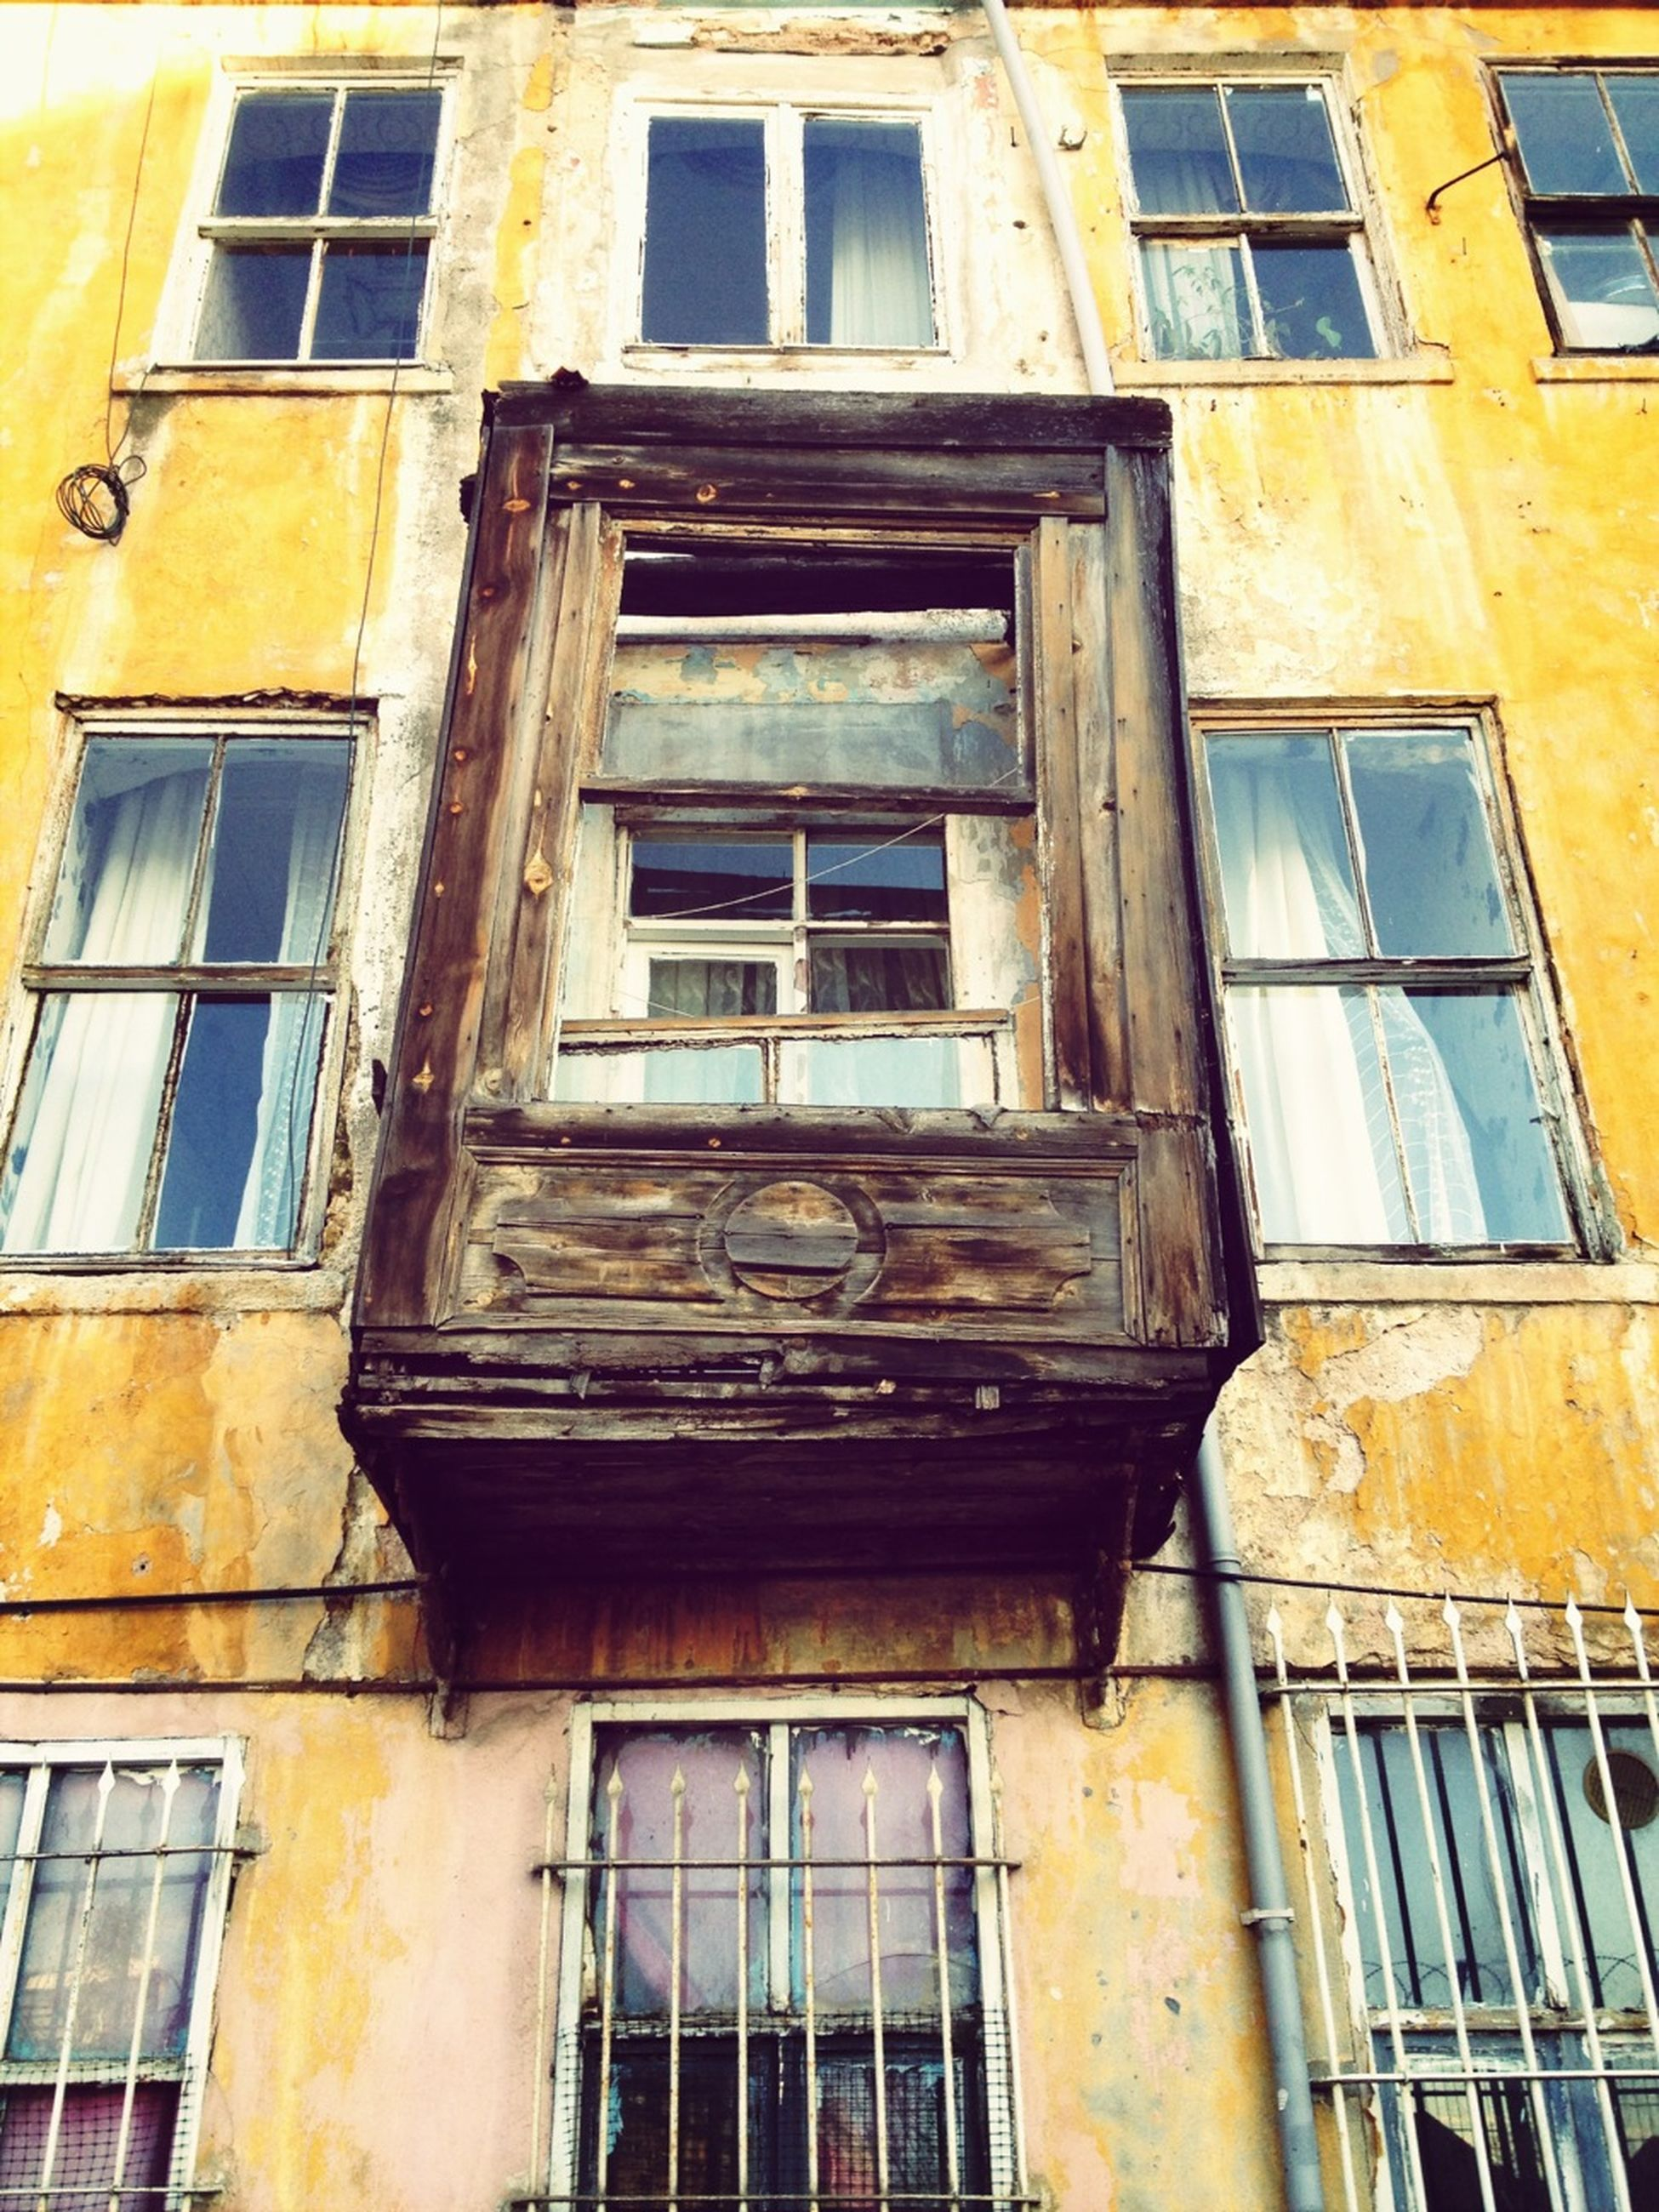 architecture, building exterior, built structure, window, low angle view, residential building, building, residential structure, glass - material, full frame, balcony, old, apartment, house, day, no people, city, facade, outdoors, reflection